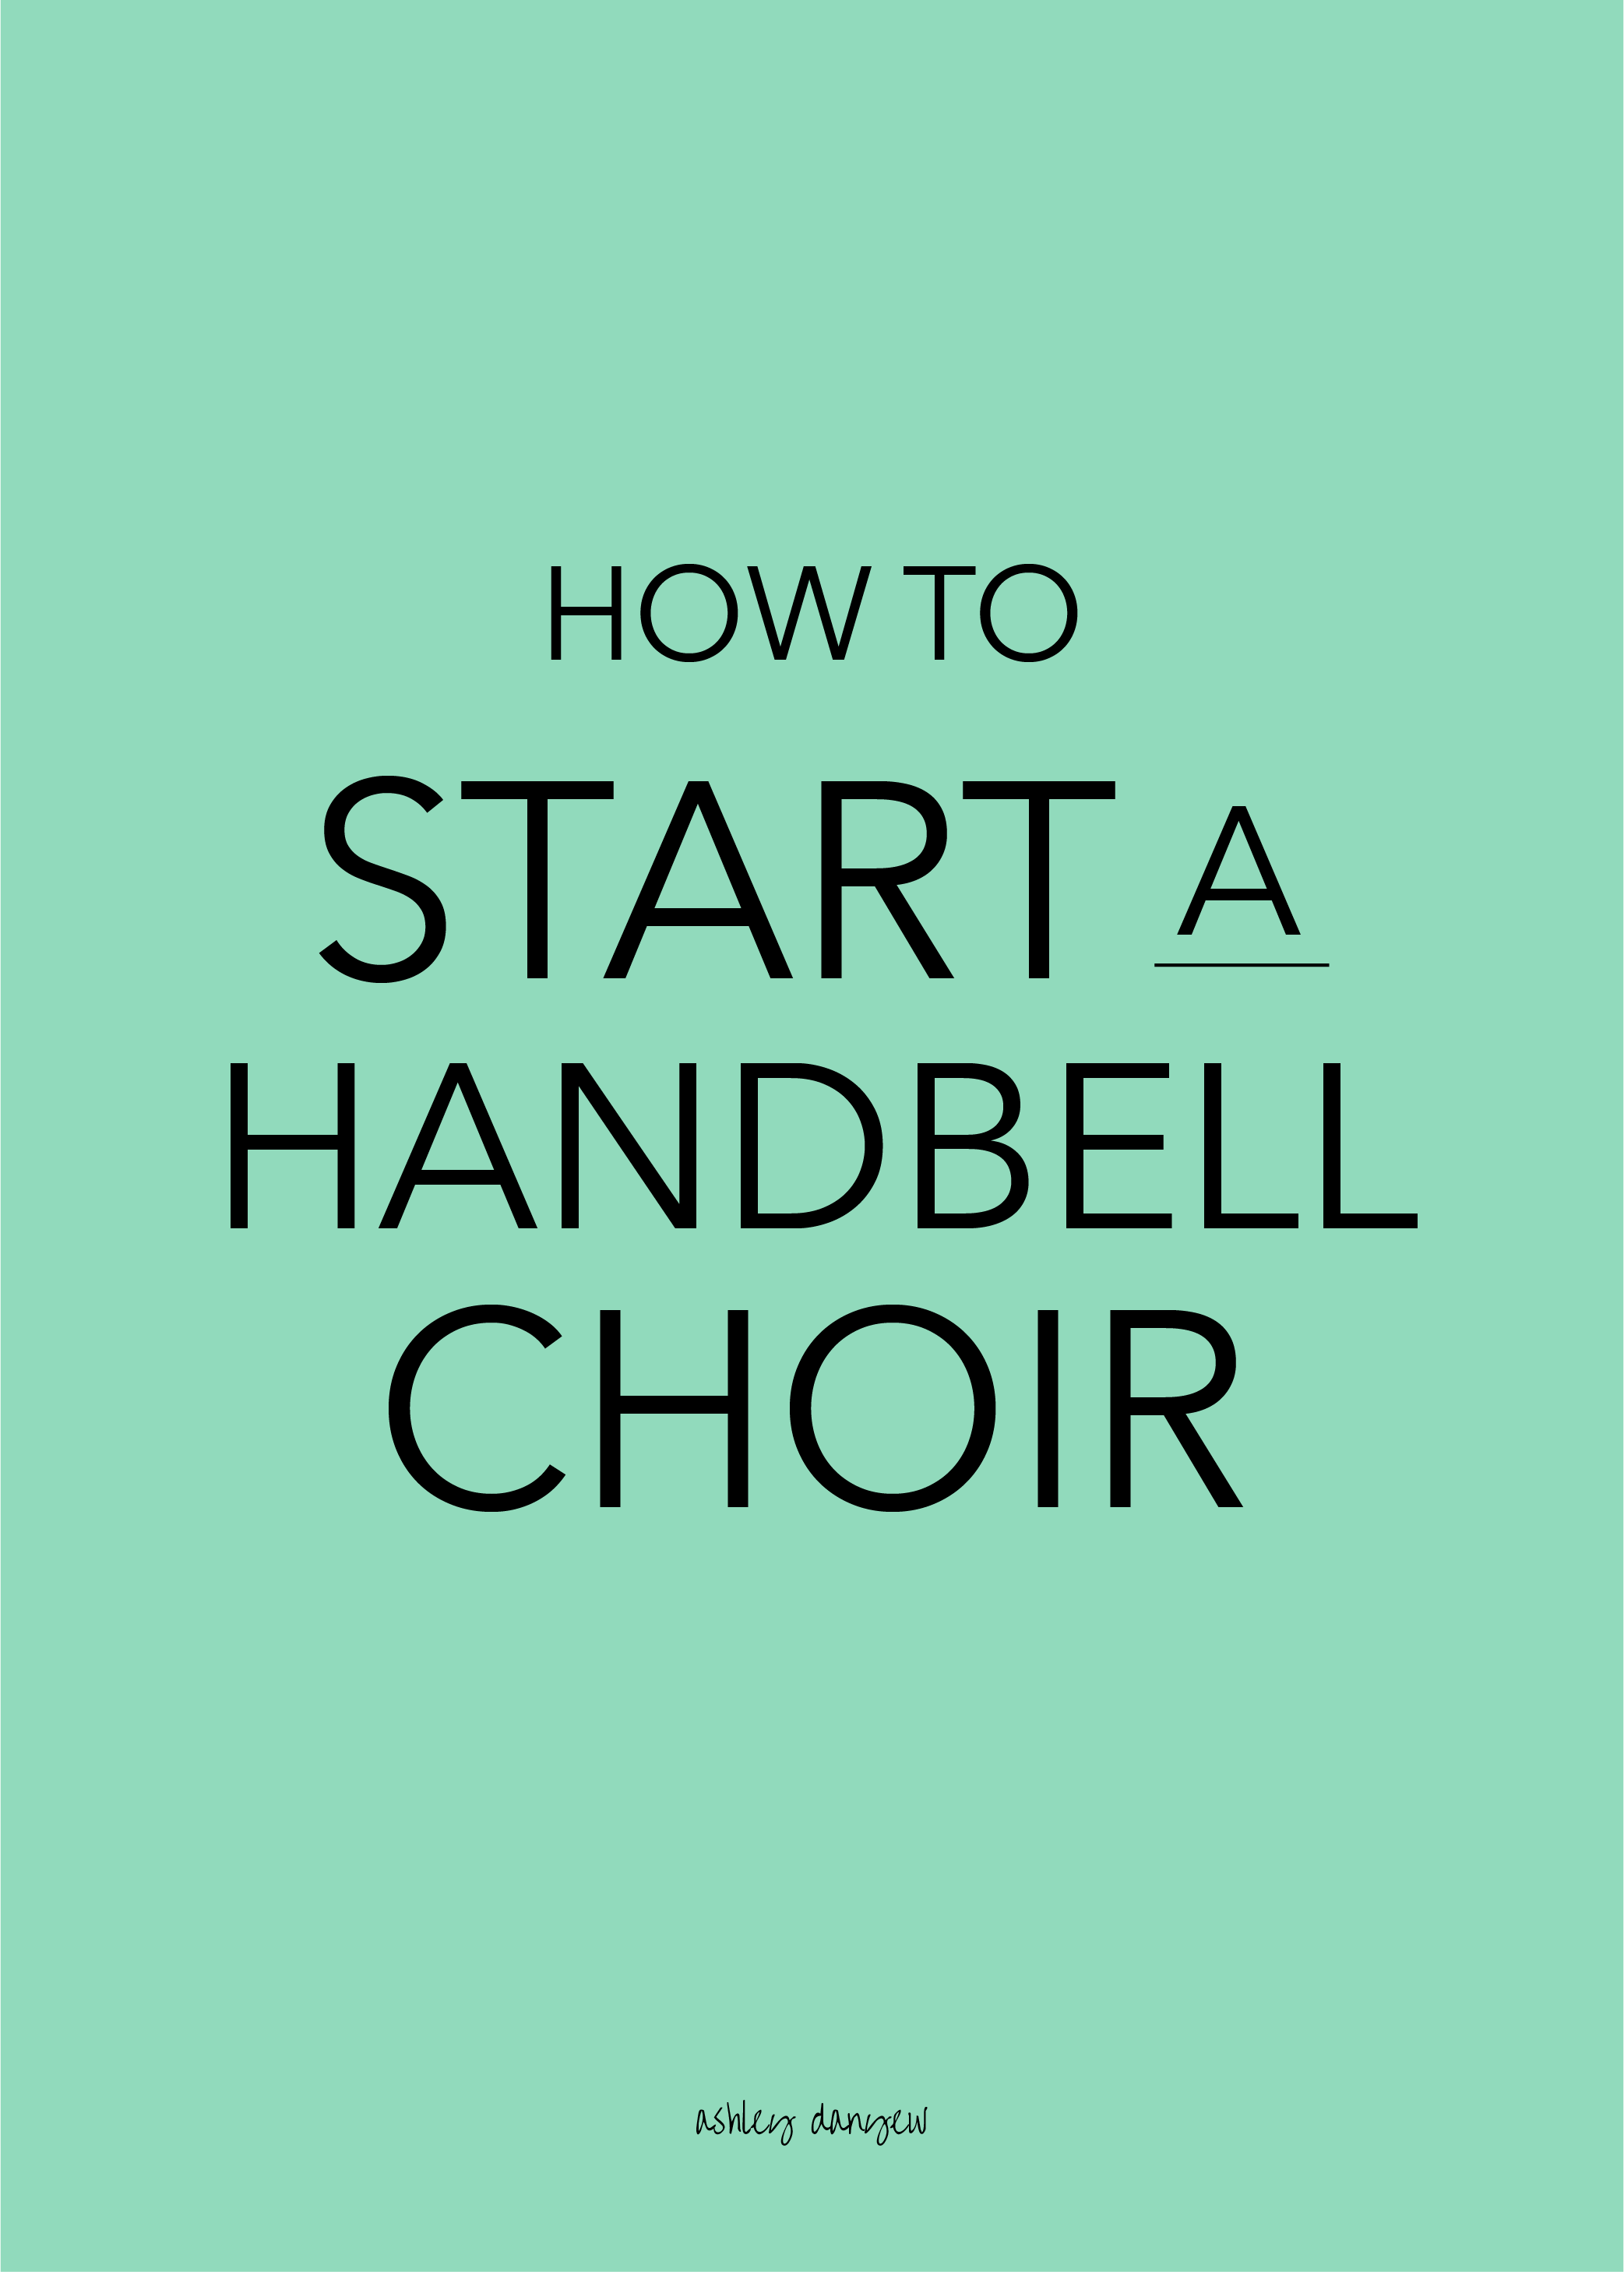 Copy of How to Start a Handbell Choir